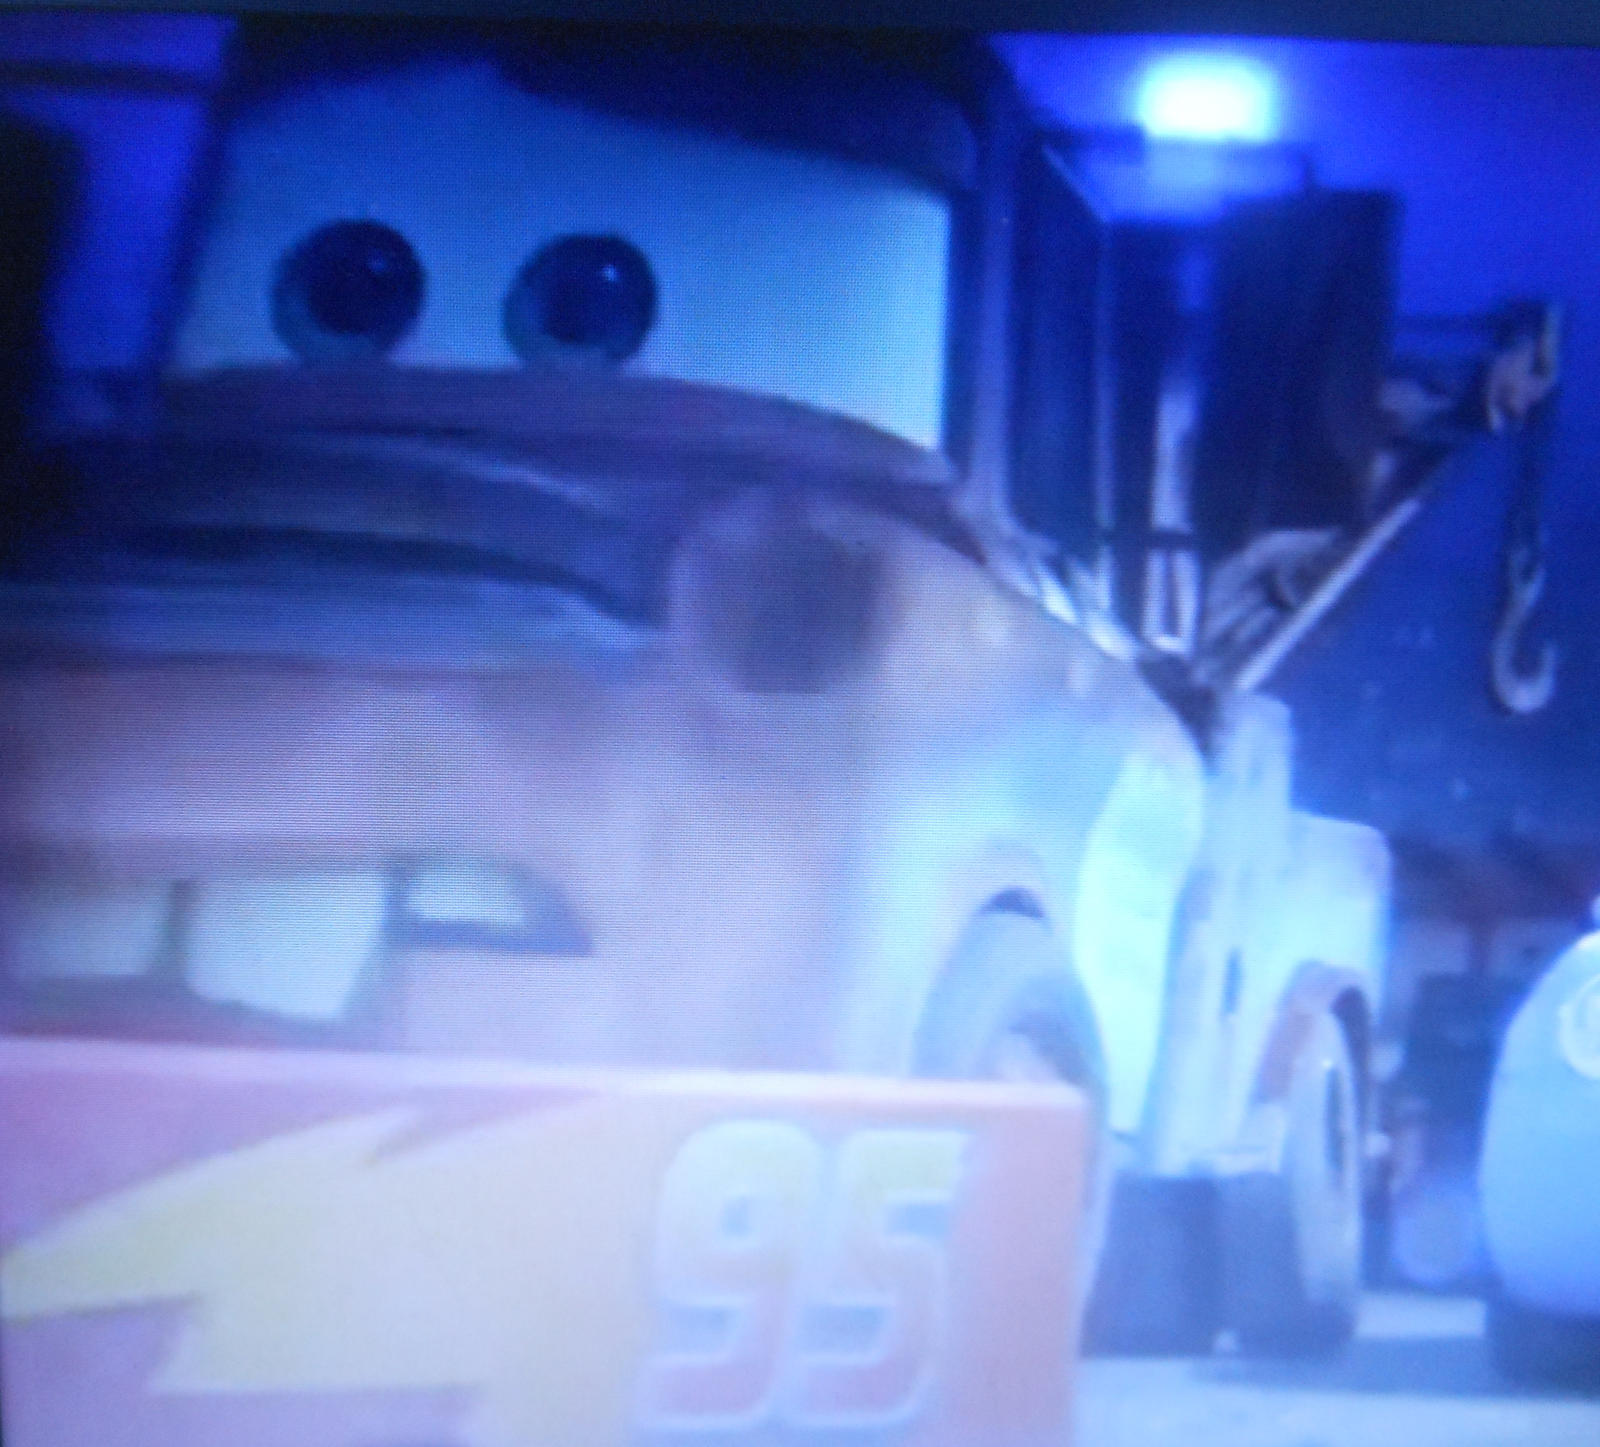 Cars 3 Mater watches Lightning Mcqueen crash. by sgtjack2016